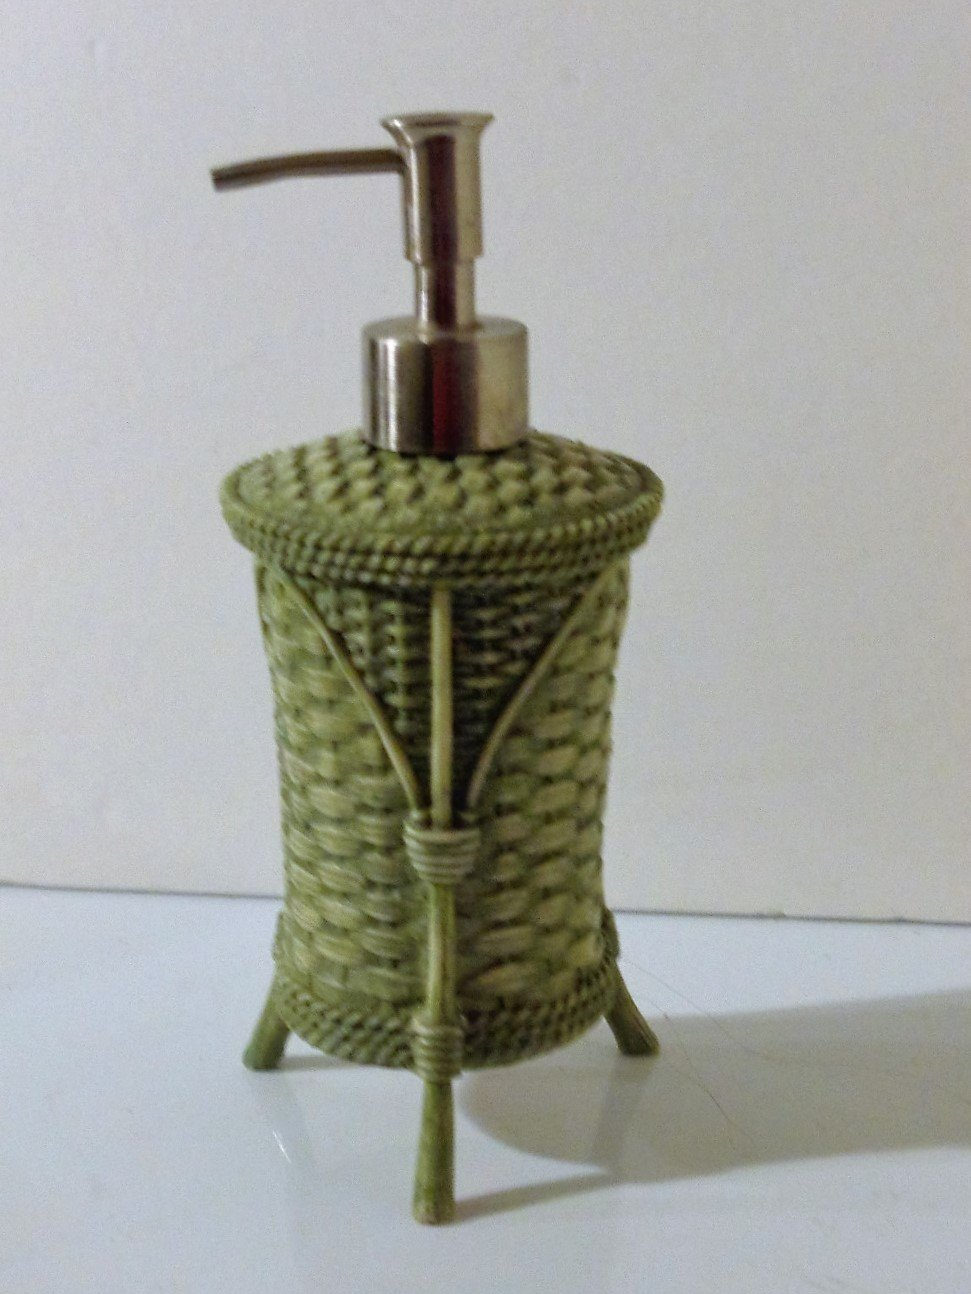 Green Lotion Pump Soap Dispenser Basket Weave Design